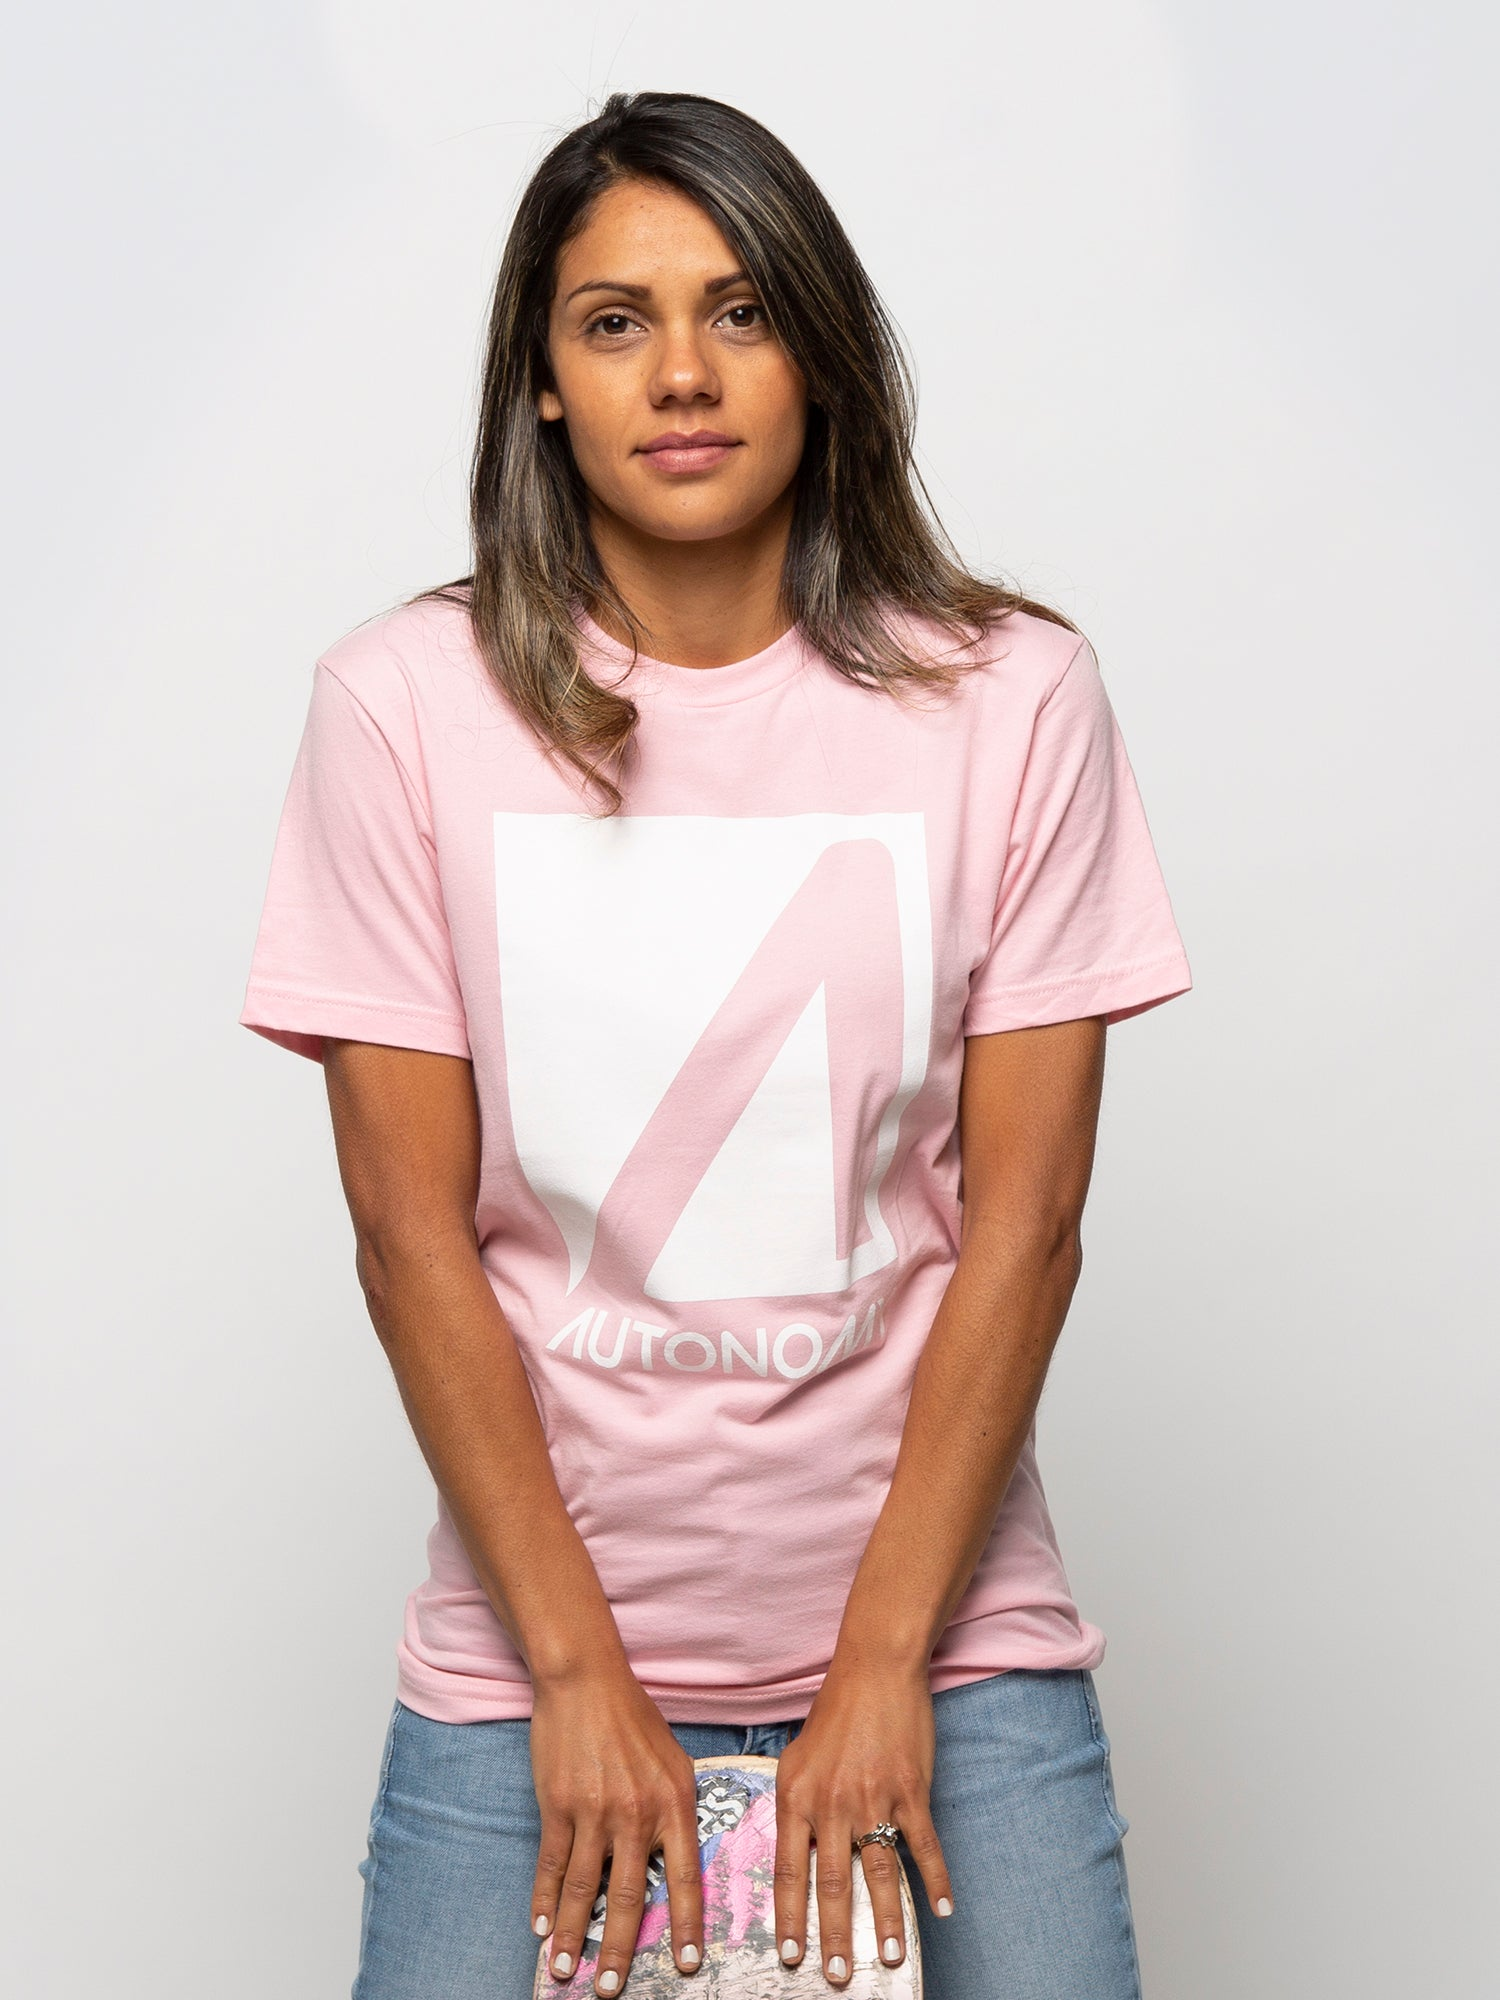 Autonomy No Comply T-shirt - Light Pink